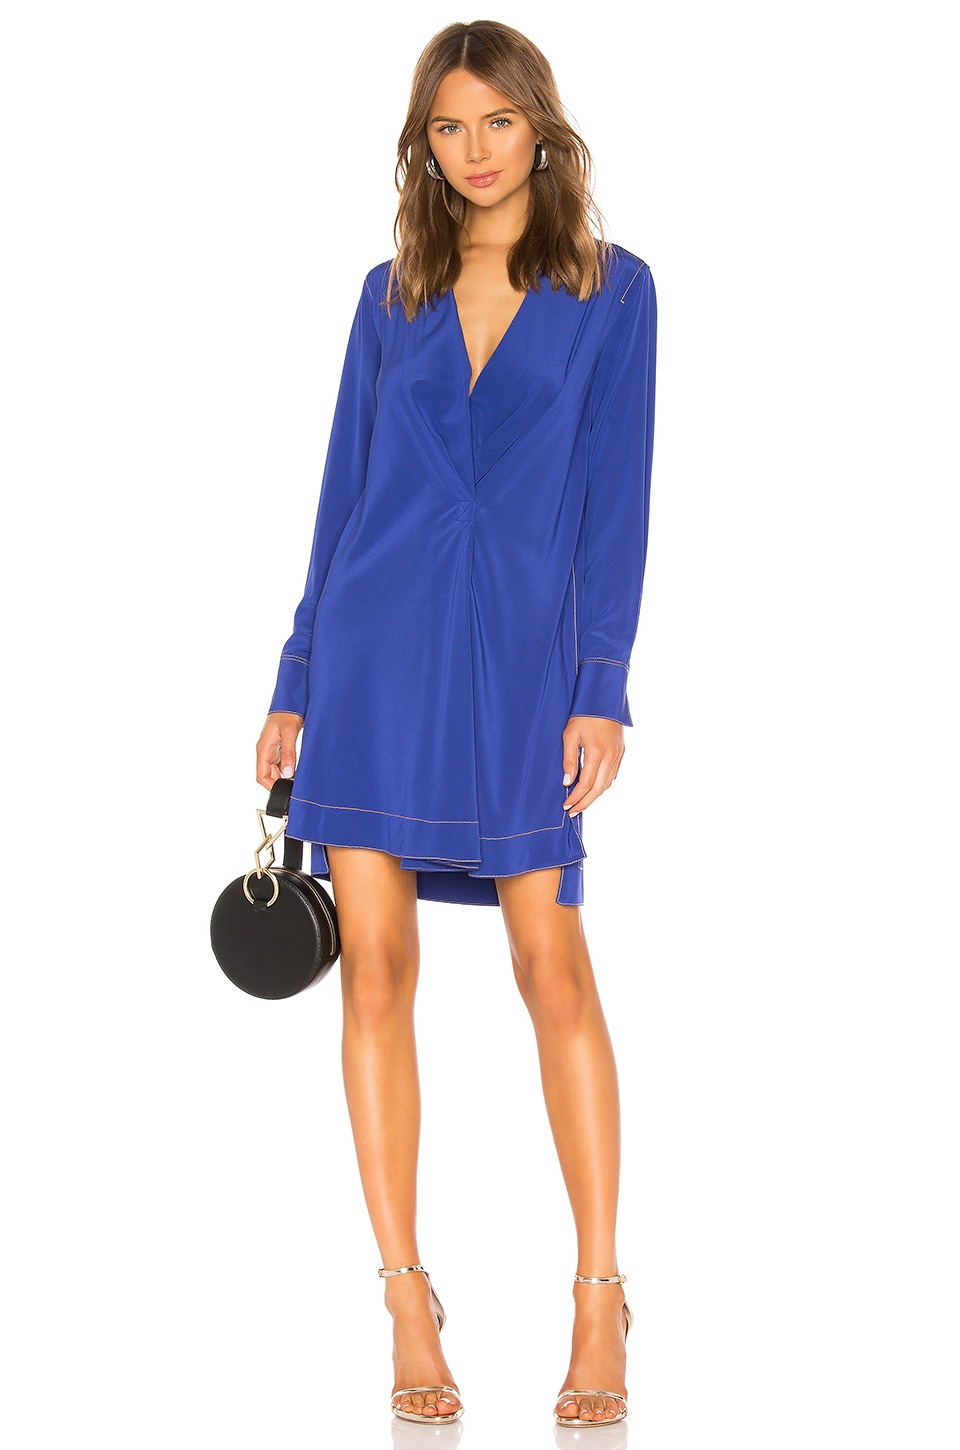 Rag & Bone Shields Dress in Electric Blue